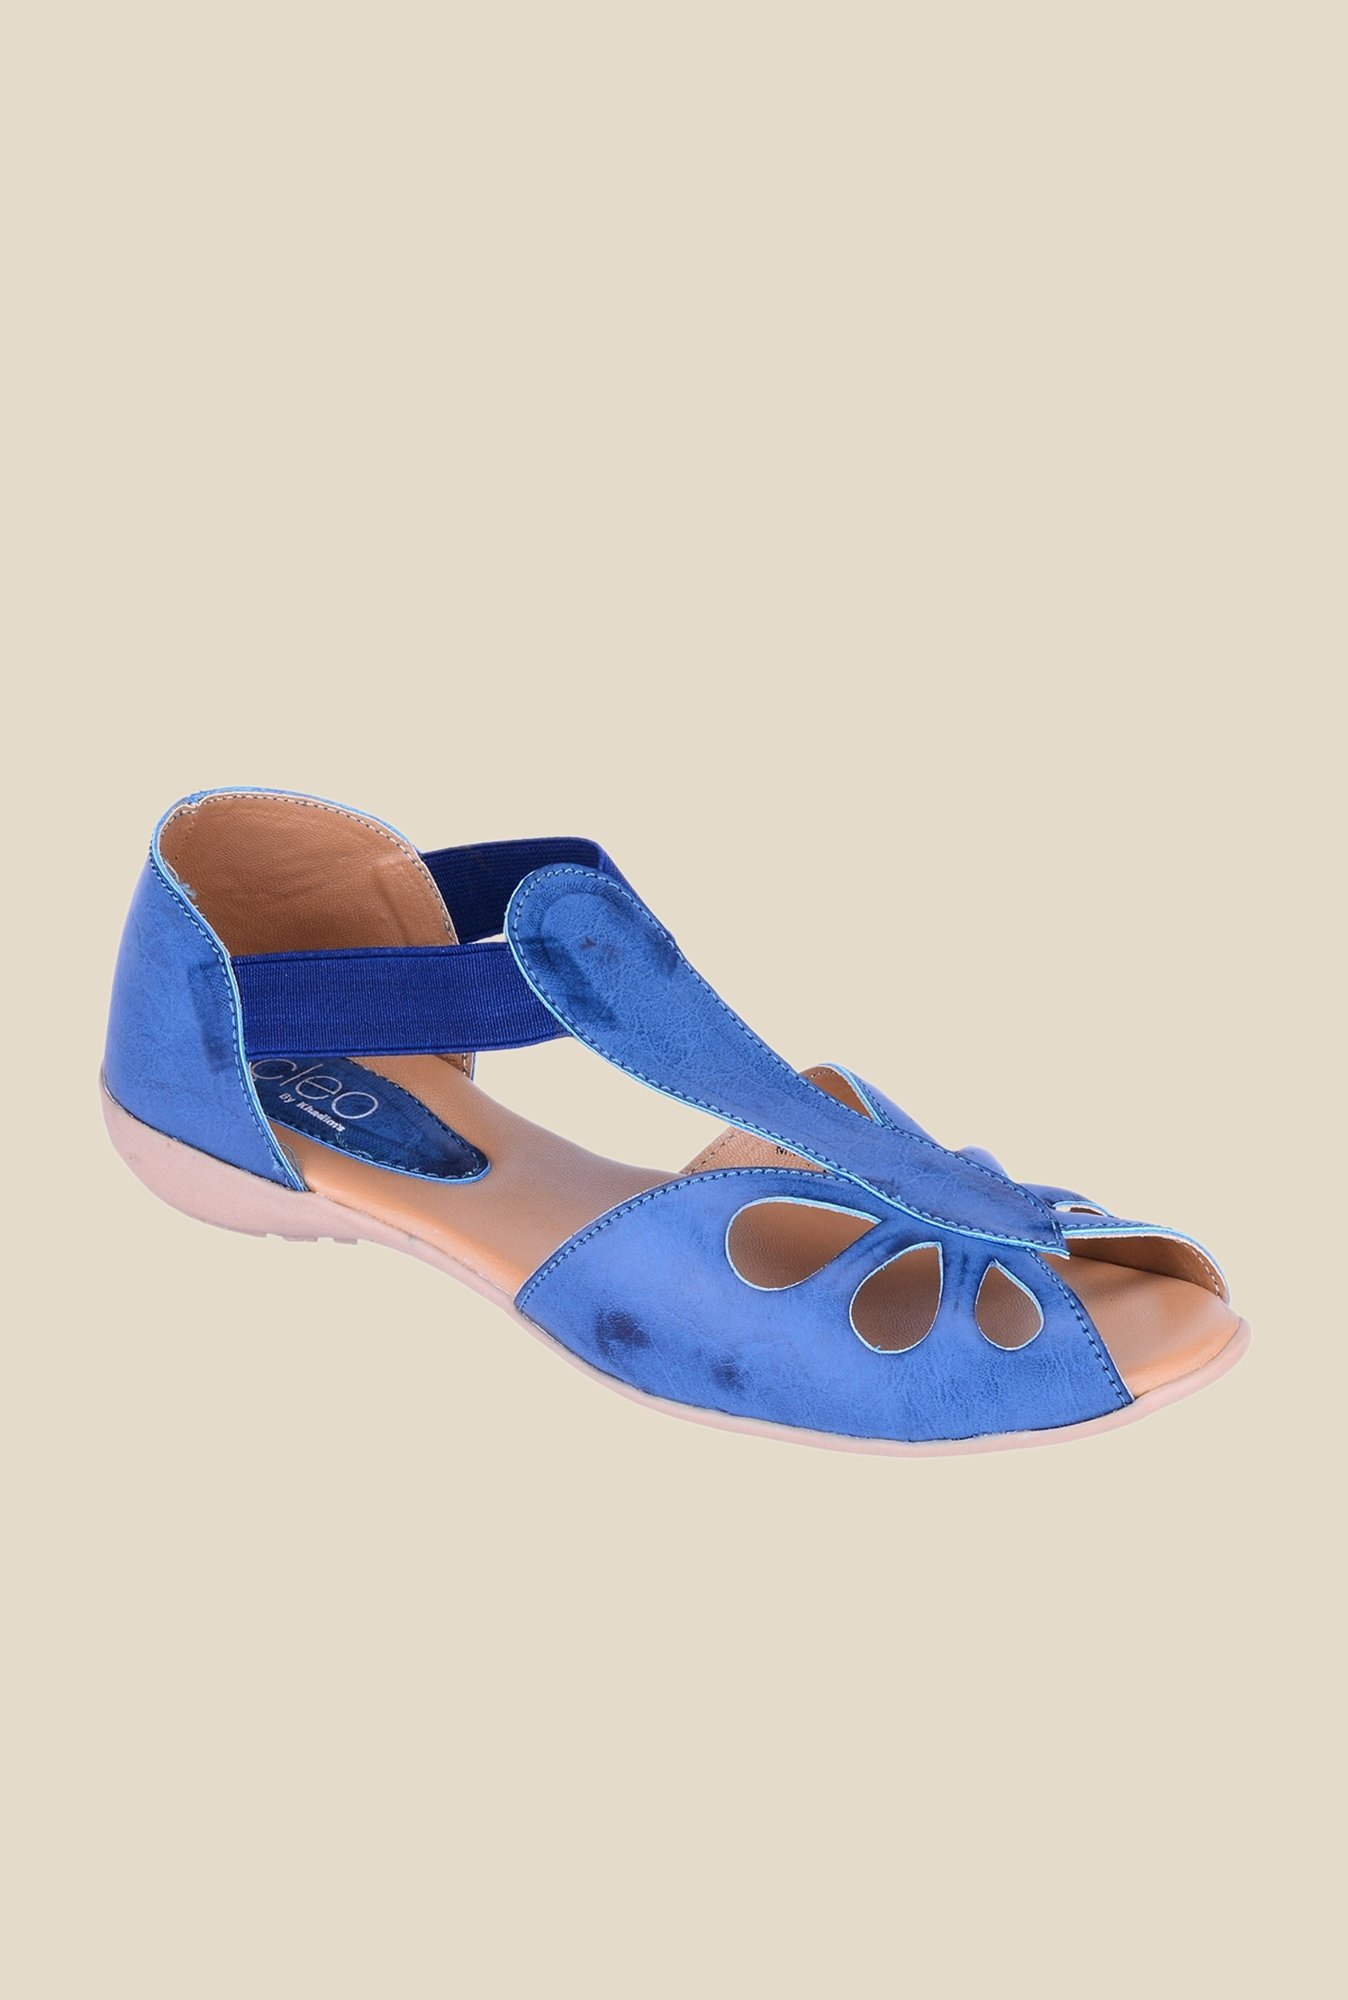 Khadim's Cleo Blue Slide D'orsay Sandals